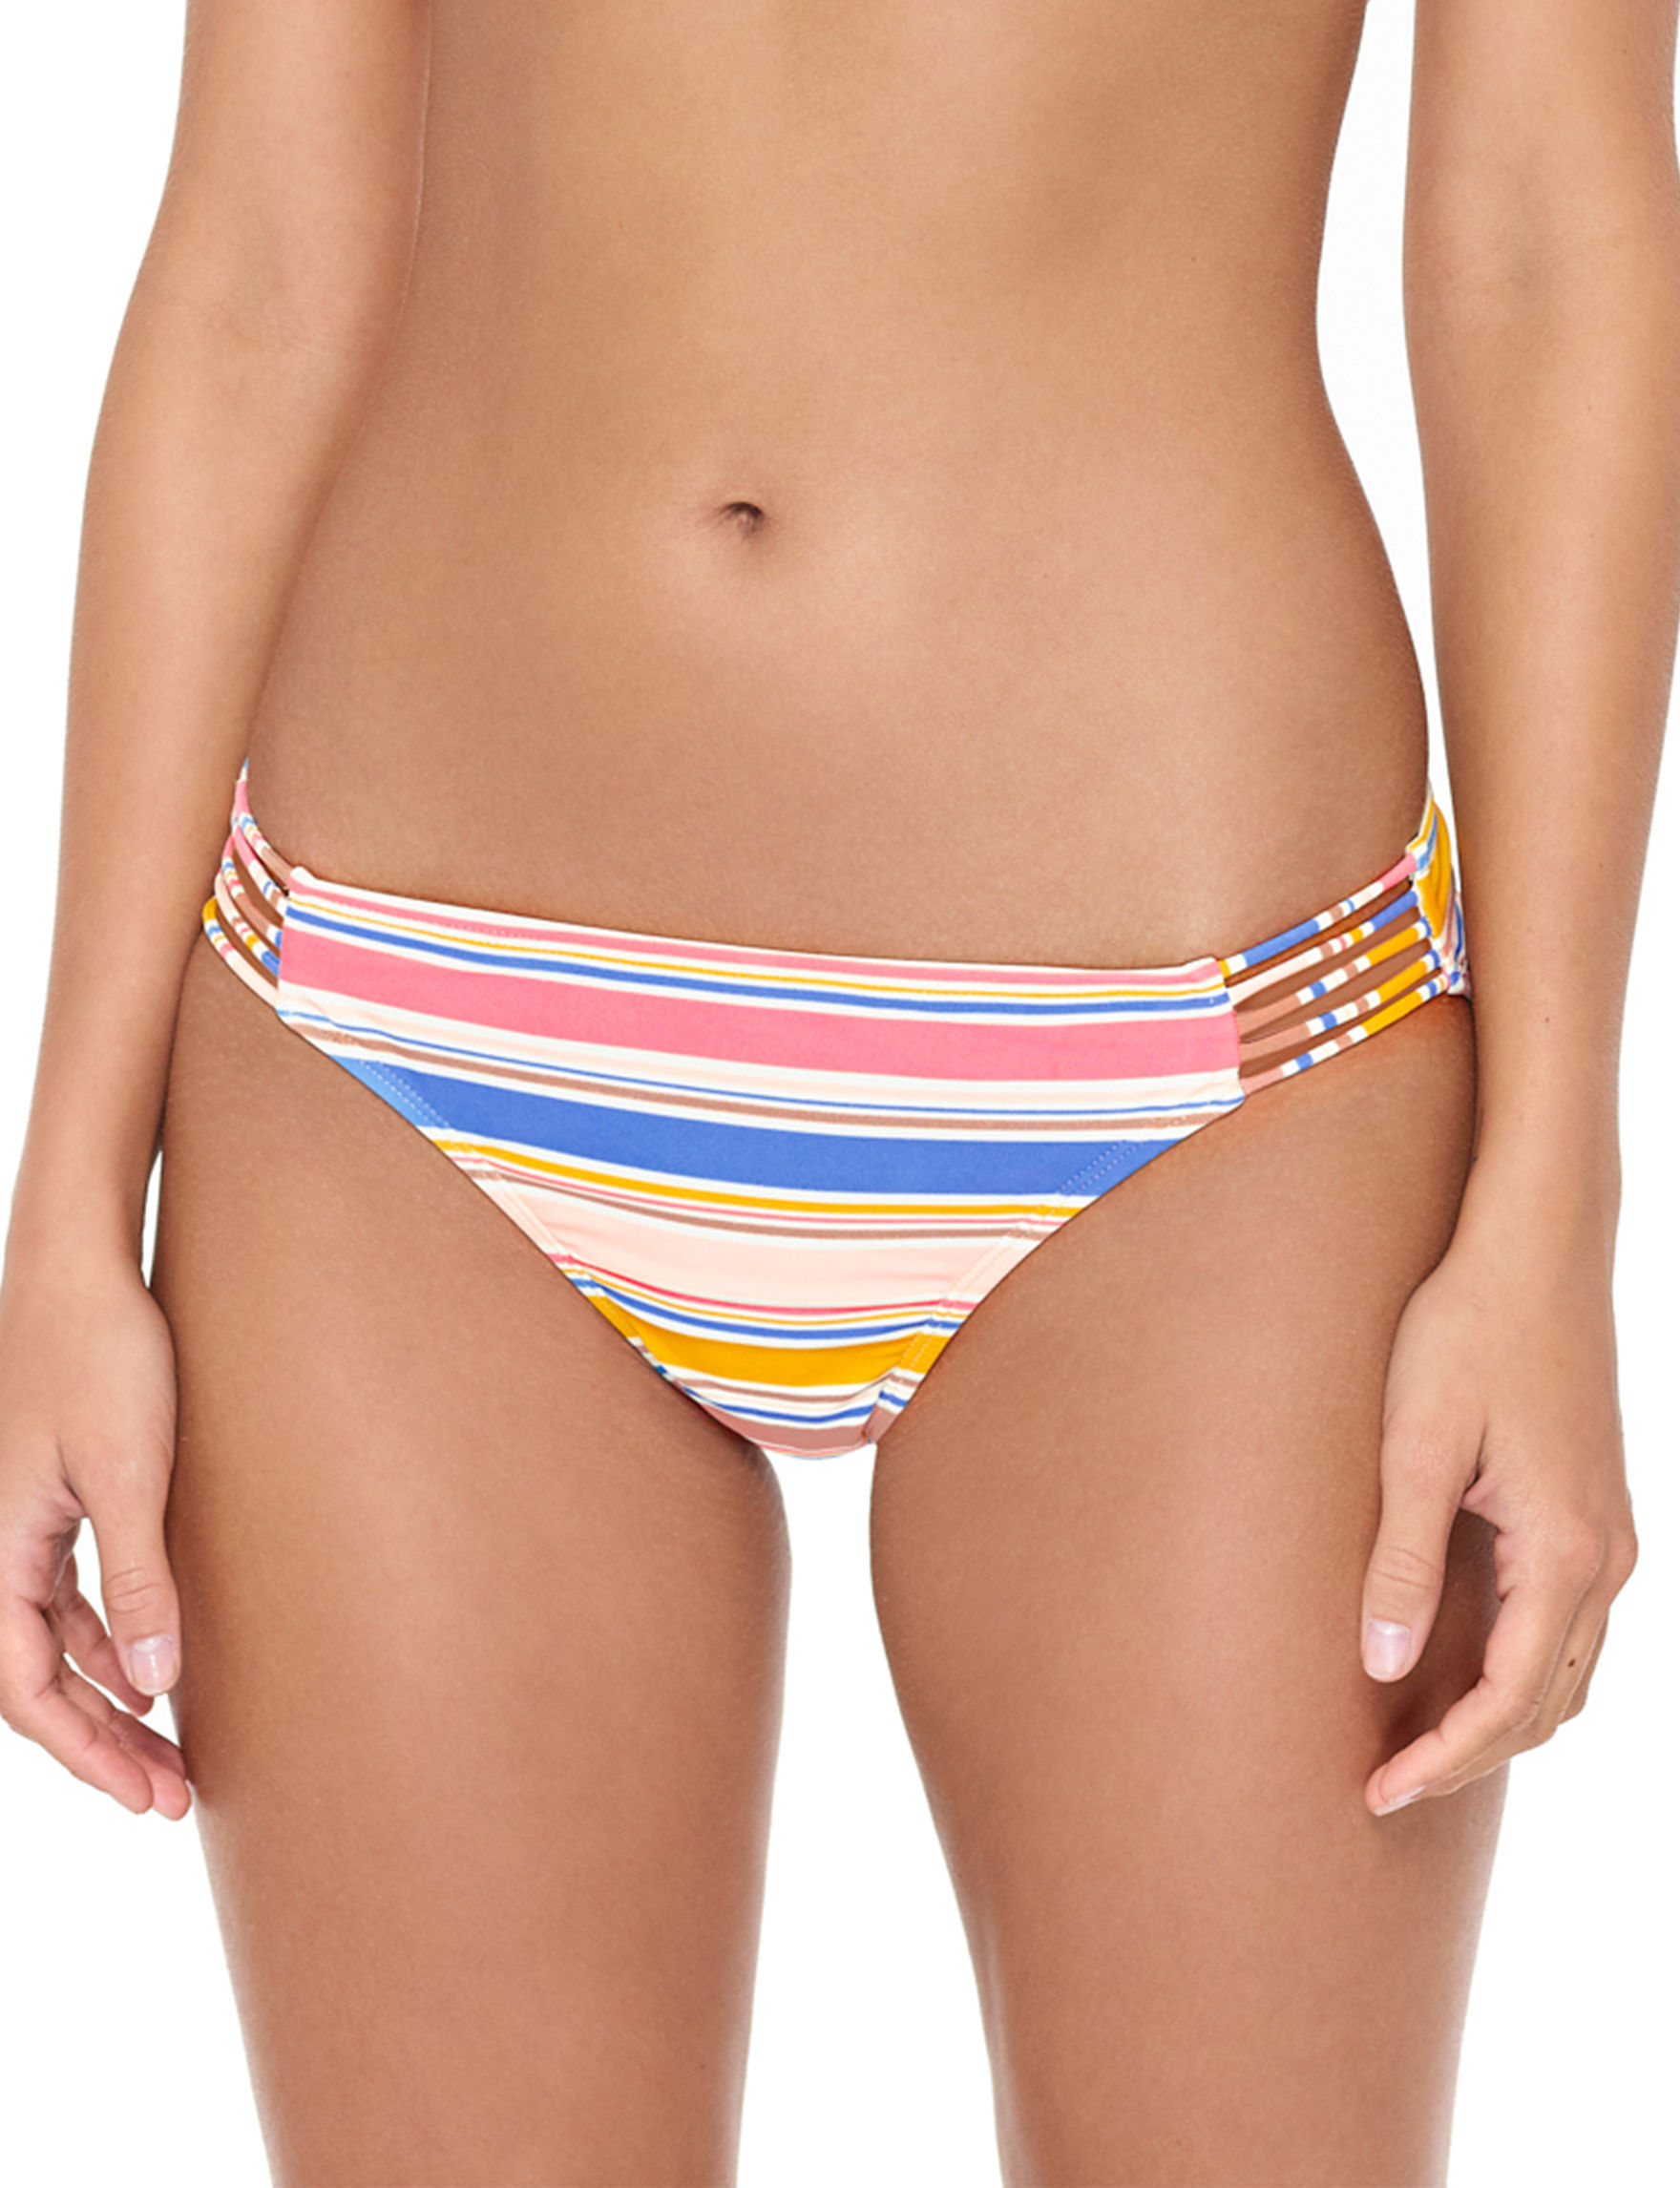 Hot Water Pink Multi Swimsuit Bottoms Hipster